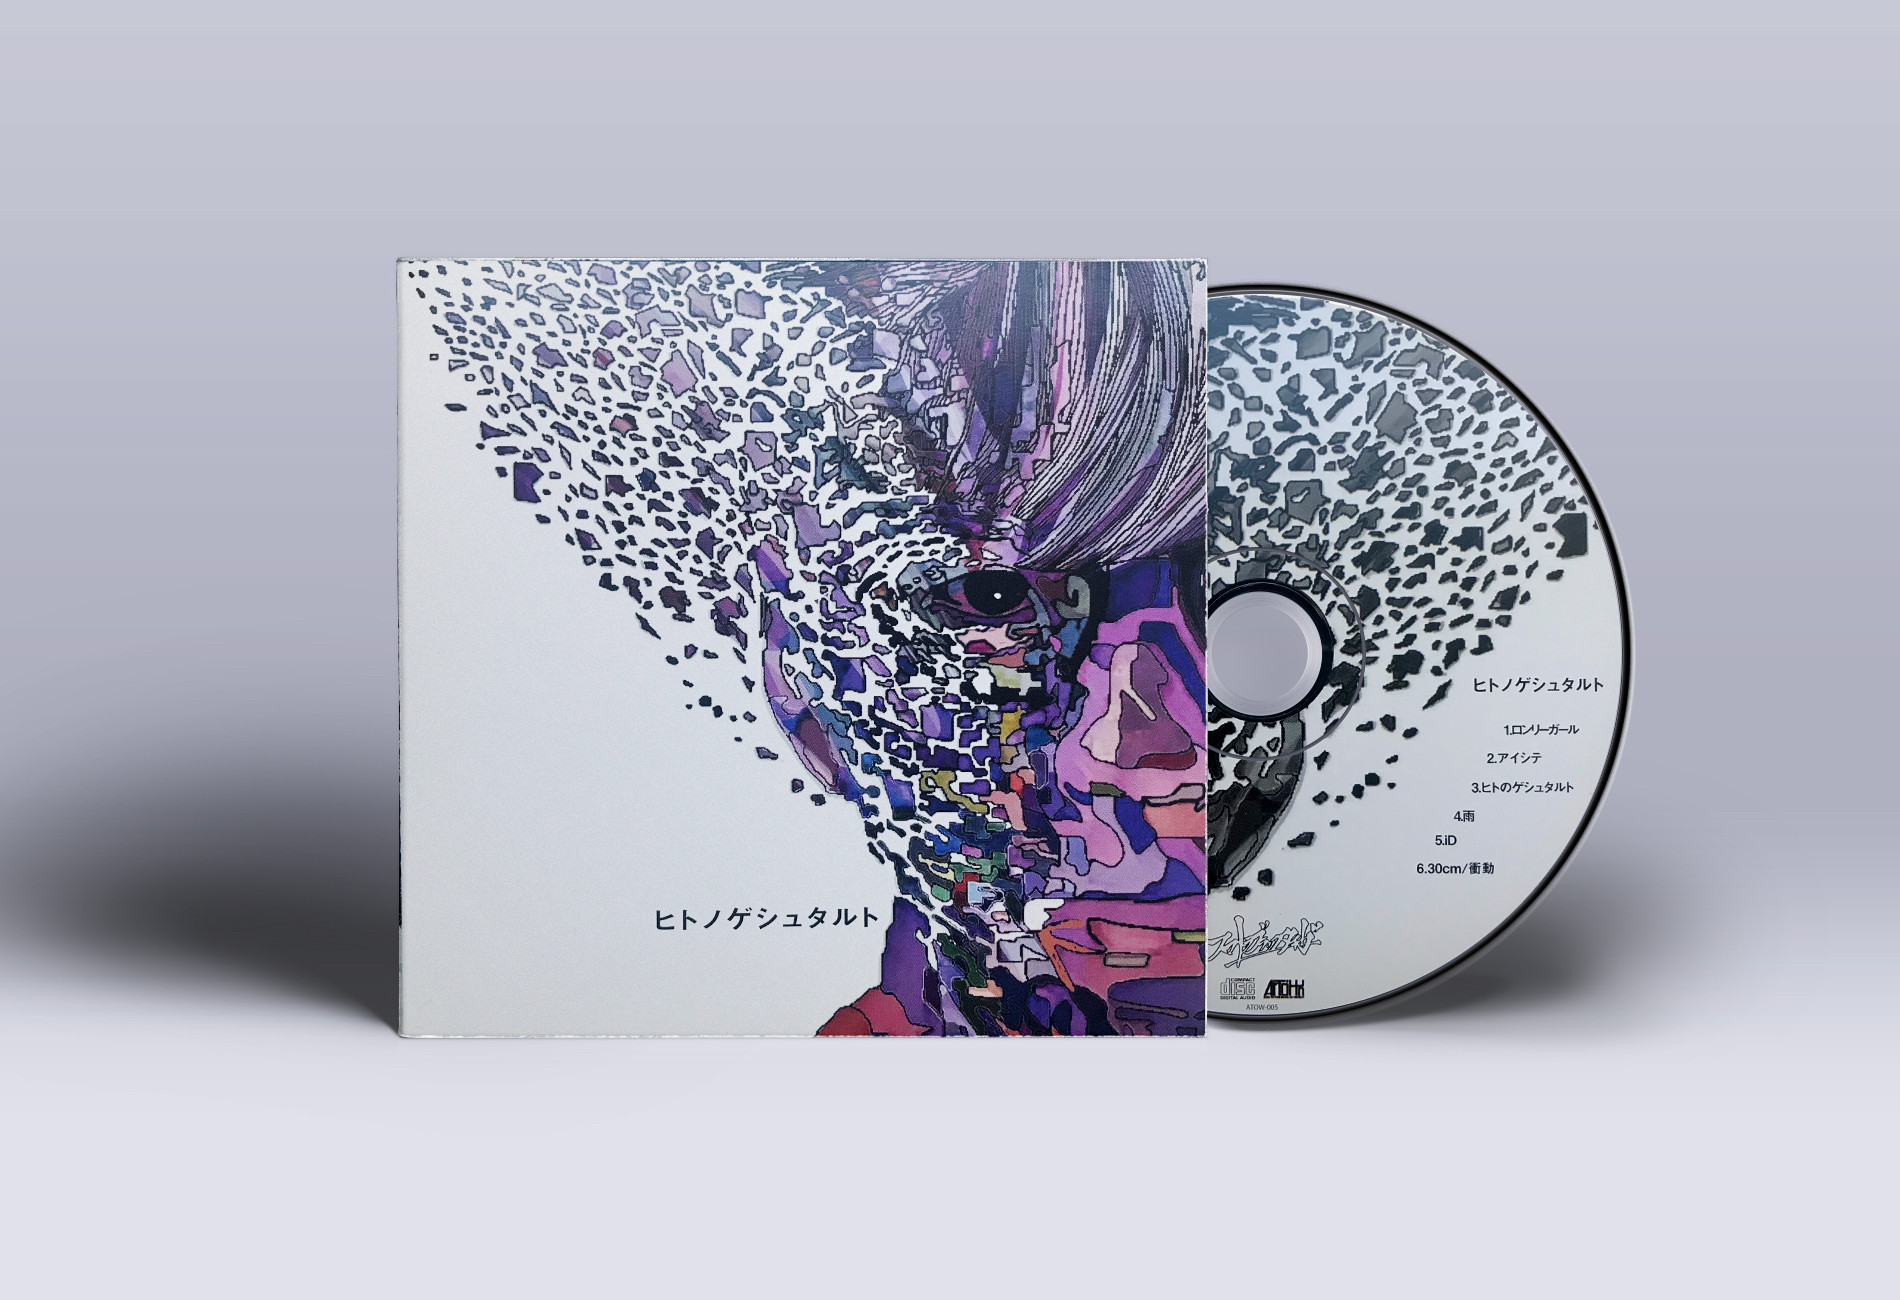 HNG_SB cover and disc.jpg